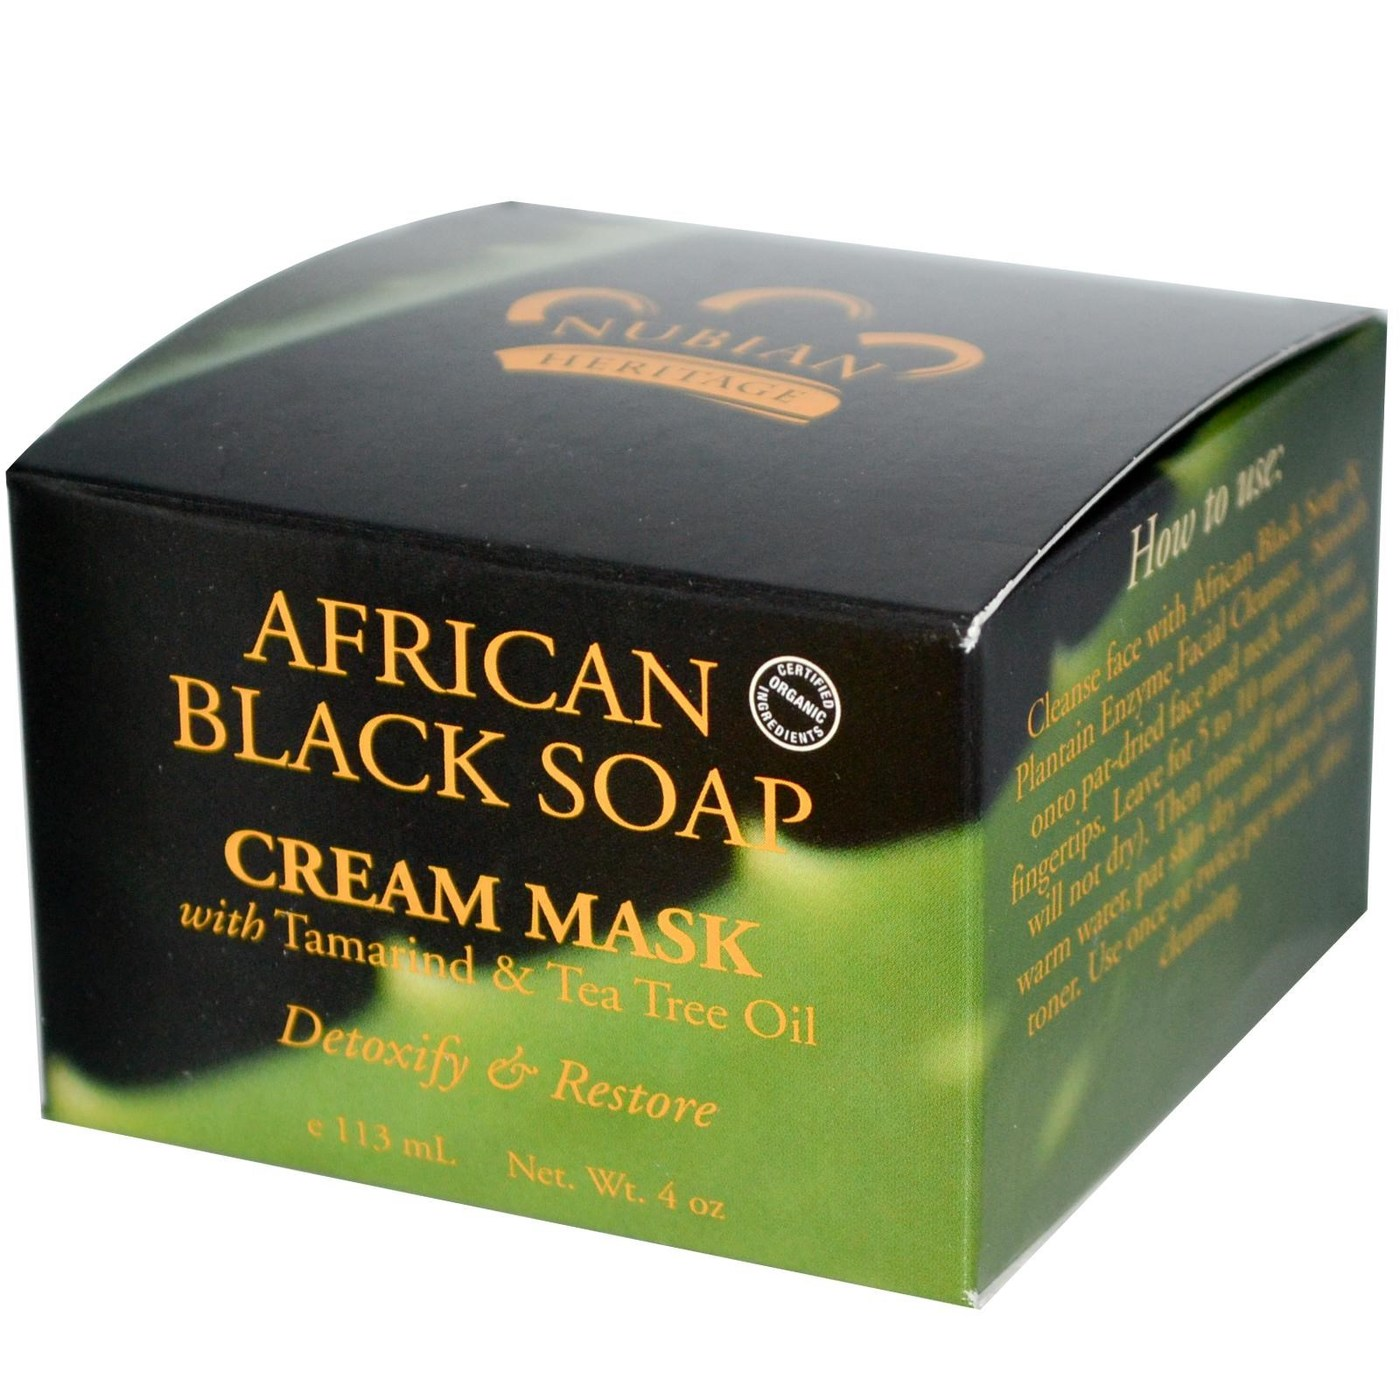 African black soap philippines